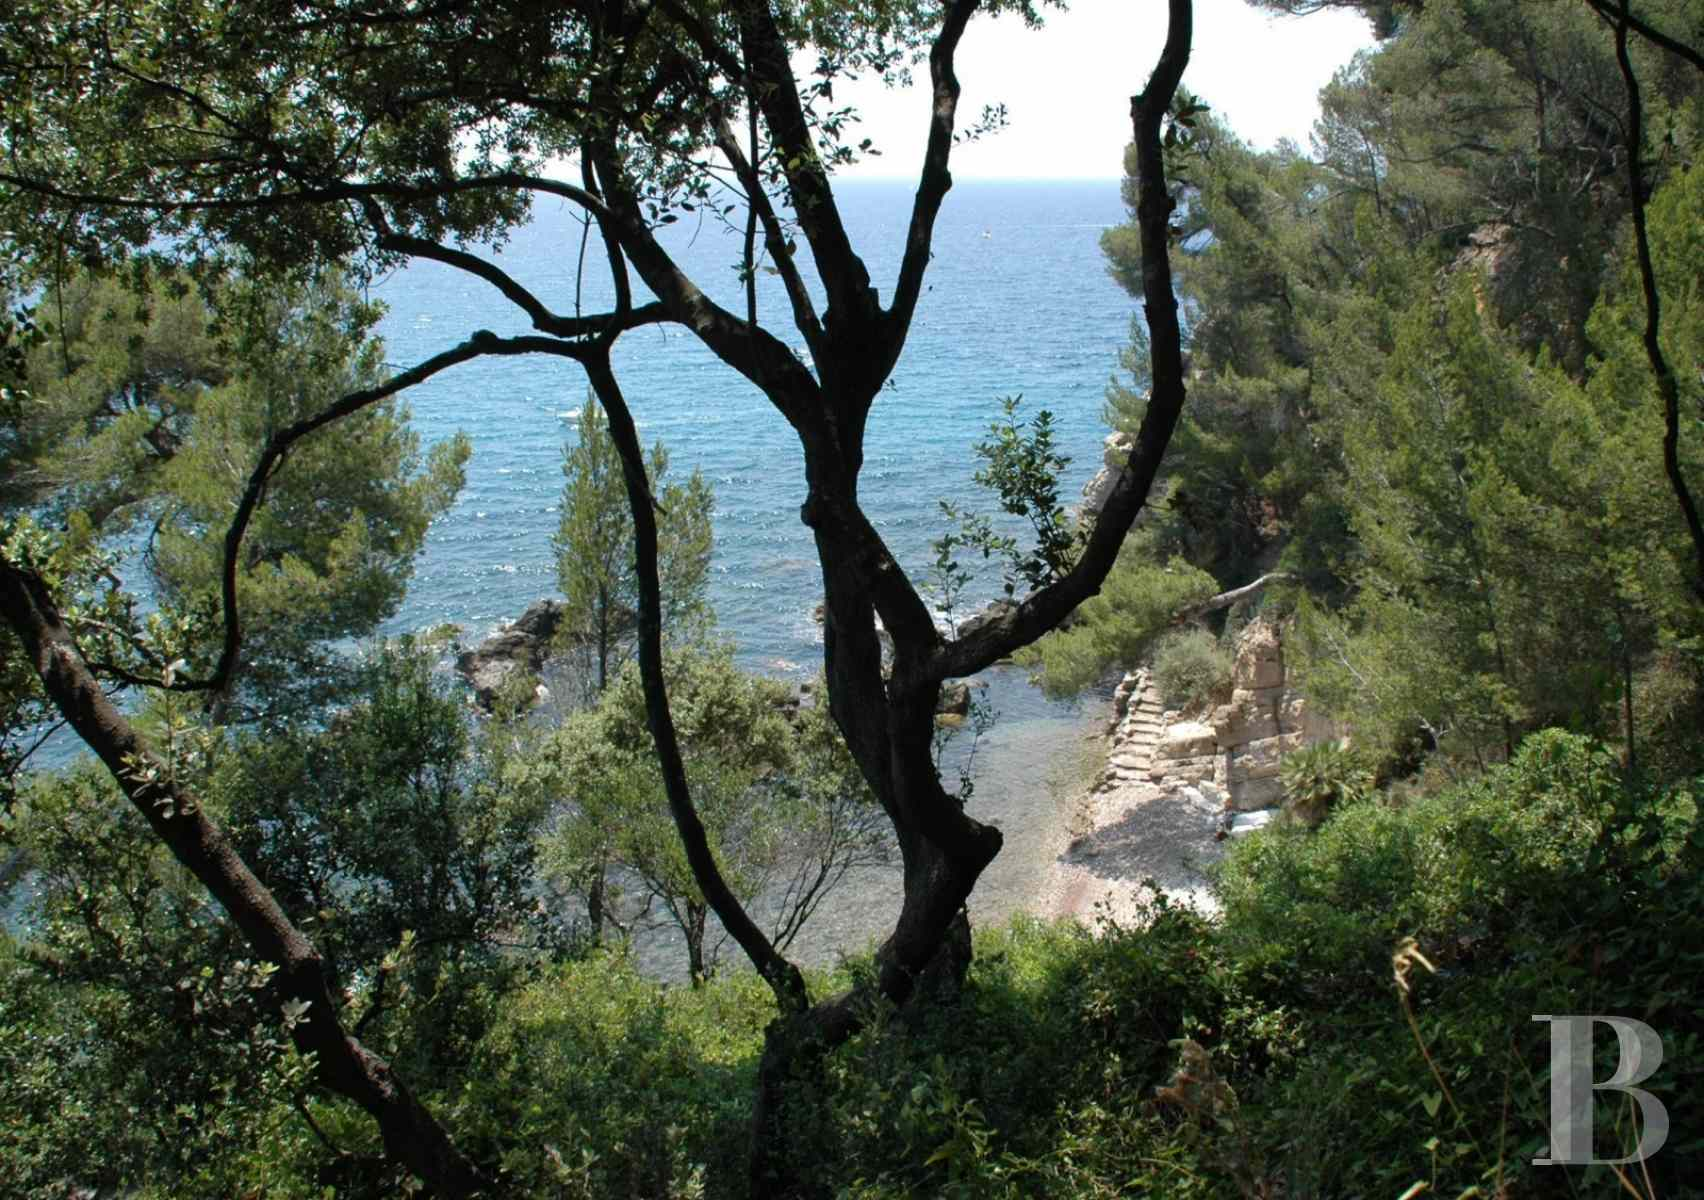 property for sale France provence cote dazur villa toulon - 10 zoom